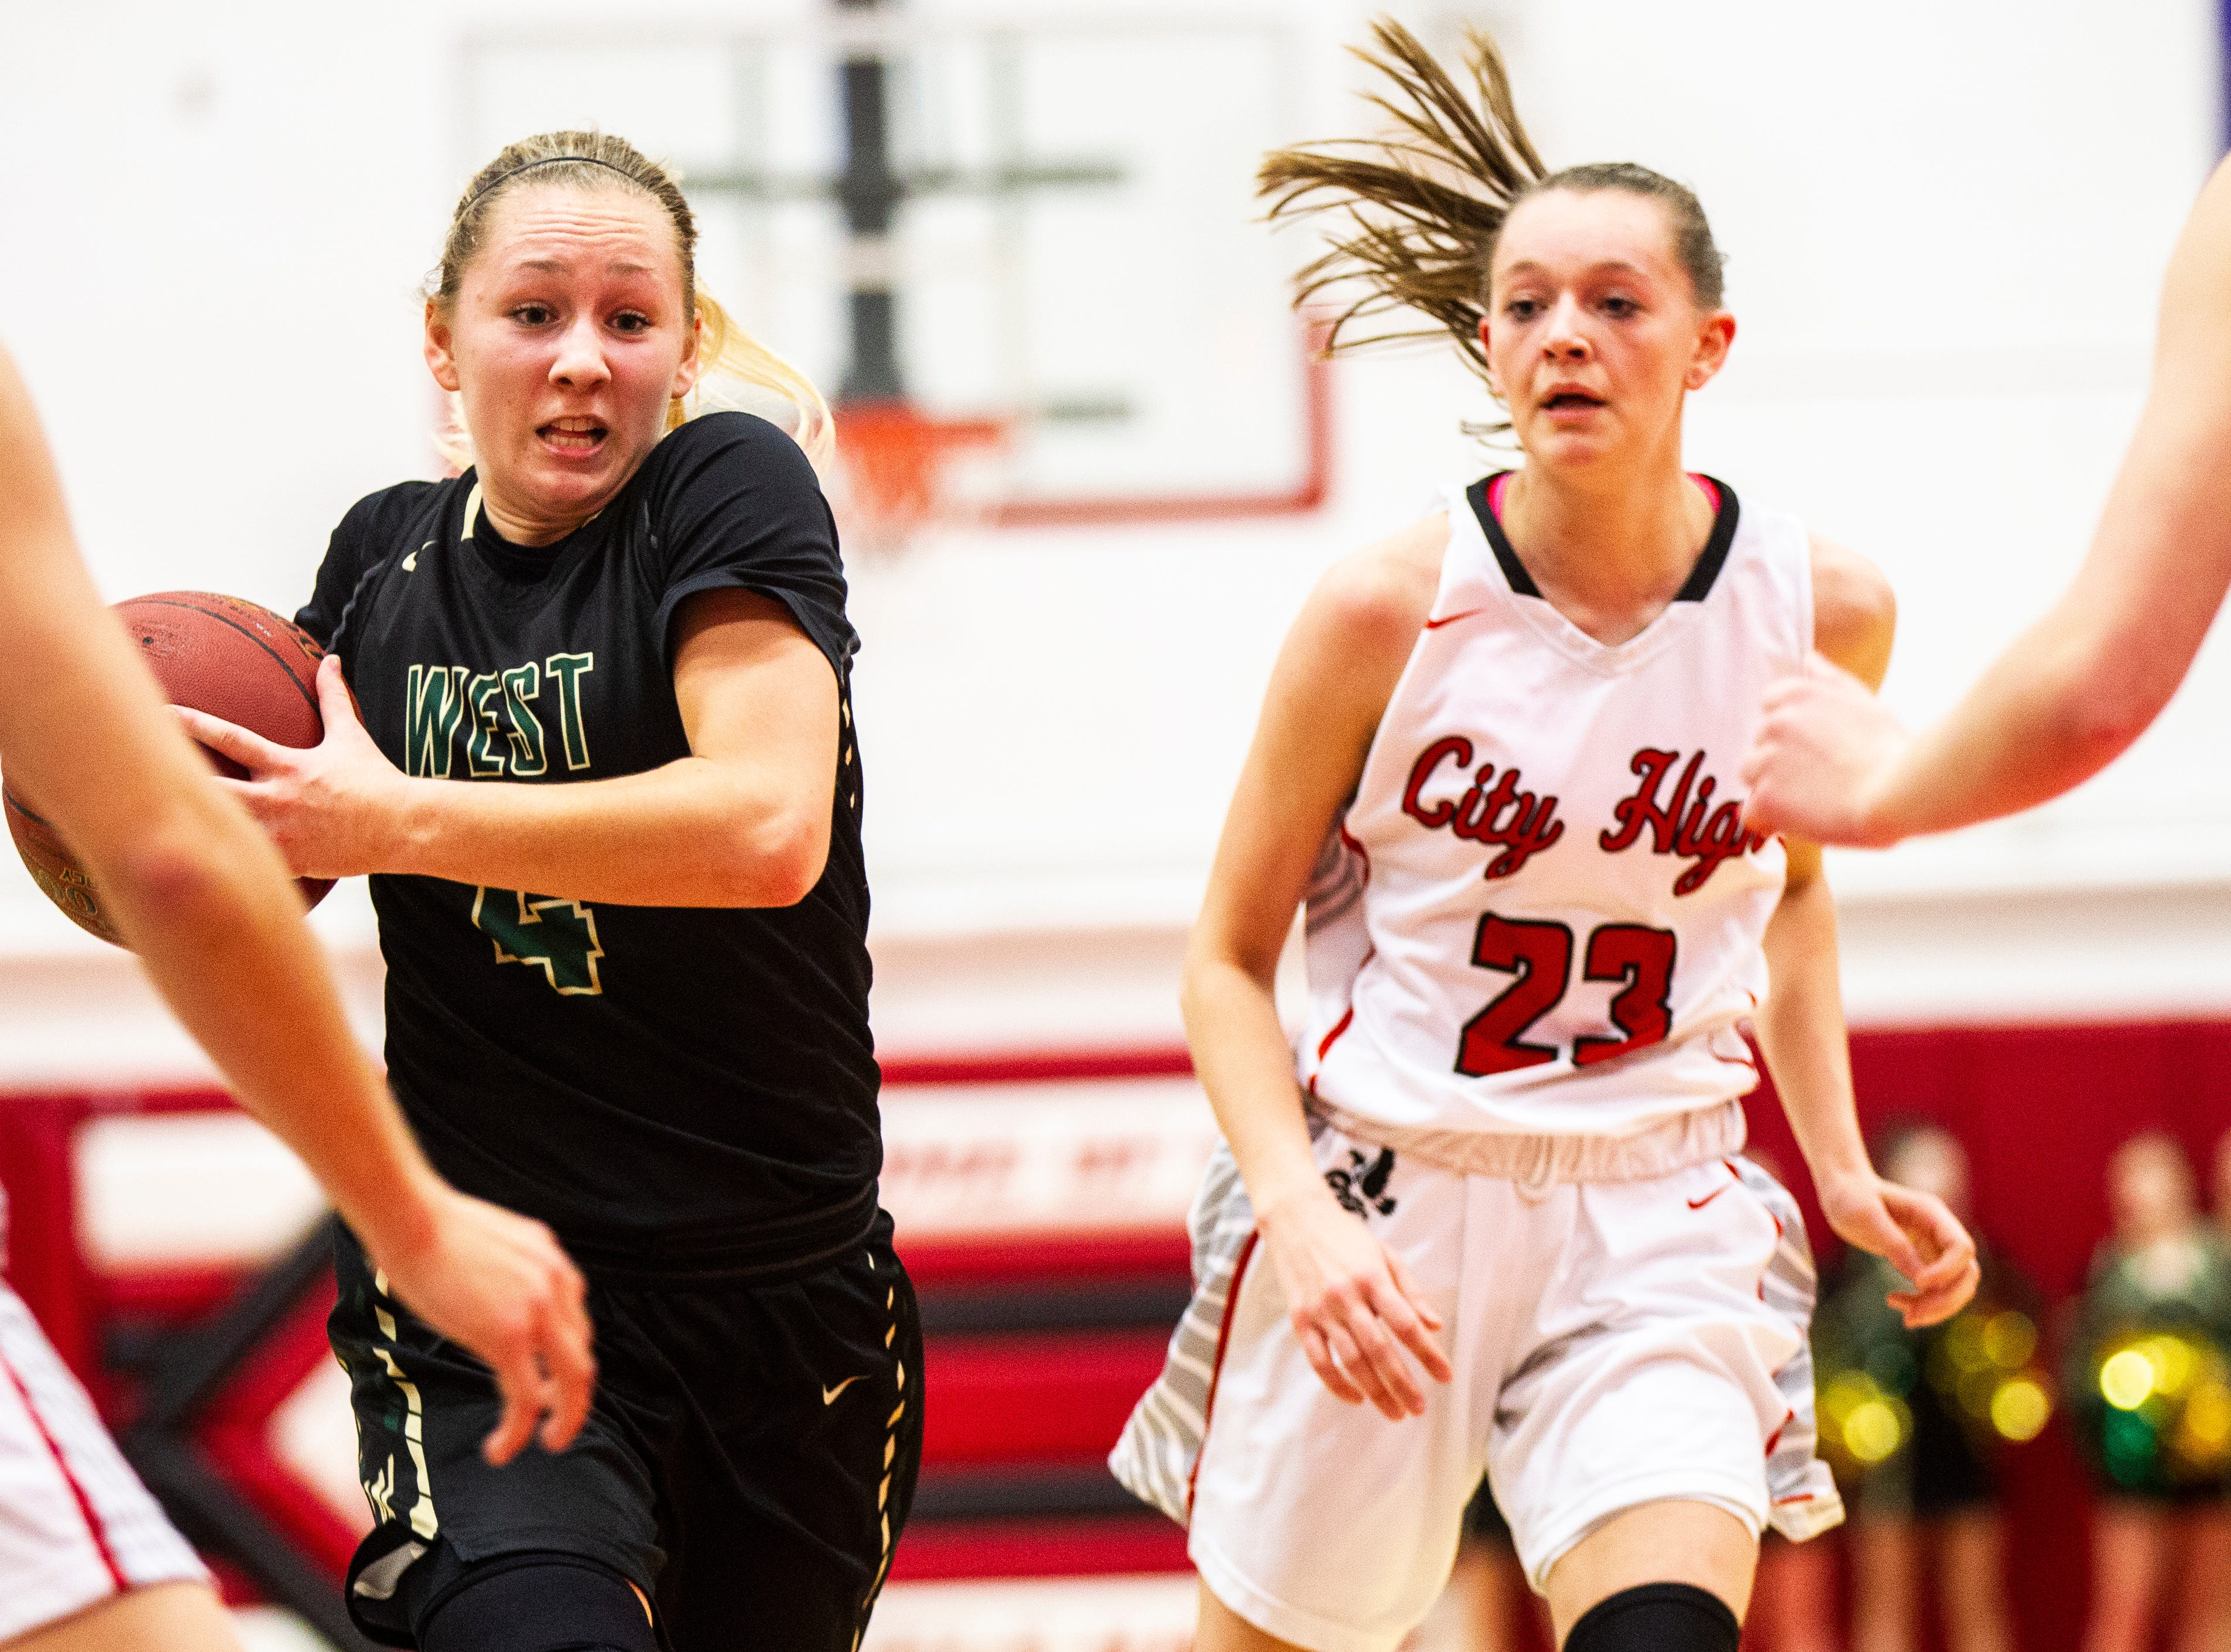 Iowa City West's Lauren Zacharias (4) takes the ball up court while being defended by Iowa City High's Aubrey Joens (23) during a Class 5A girls basketball game on Friday, Dec. 7, 2018, at City High School in Iowa City.